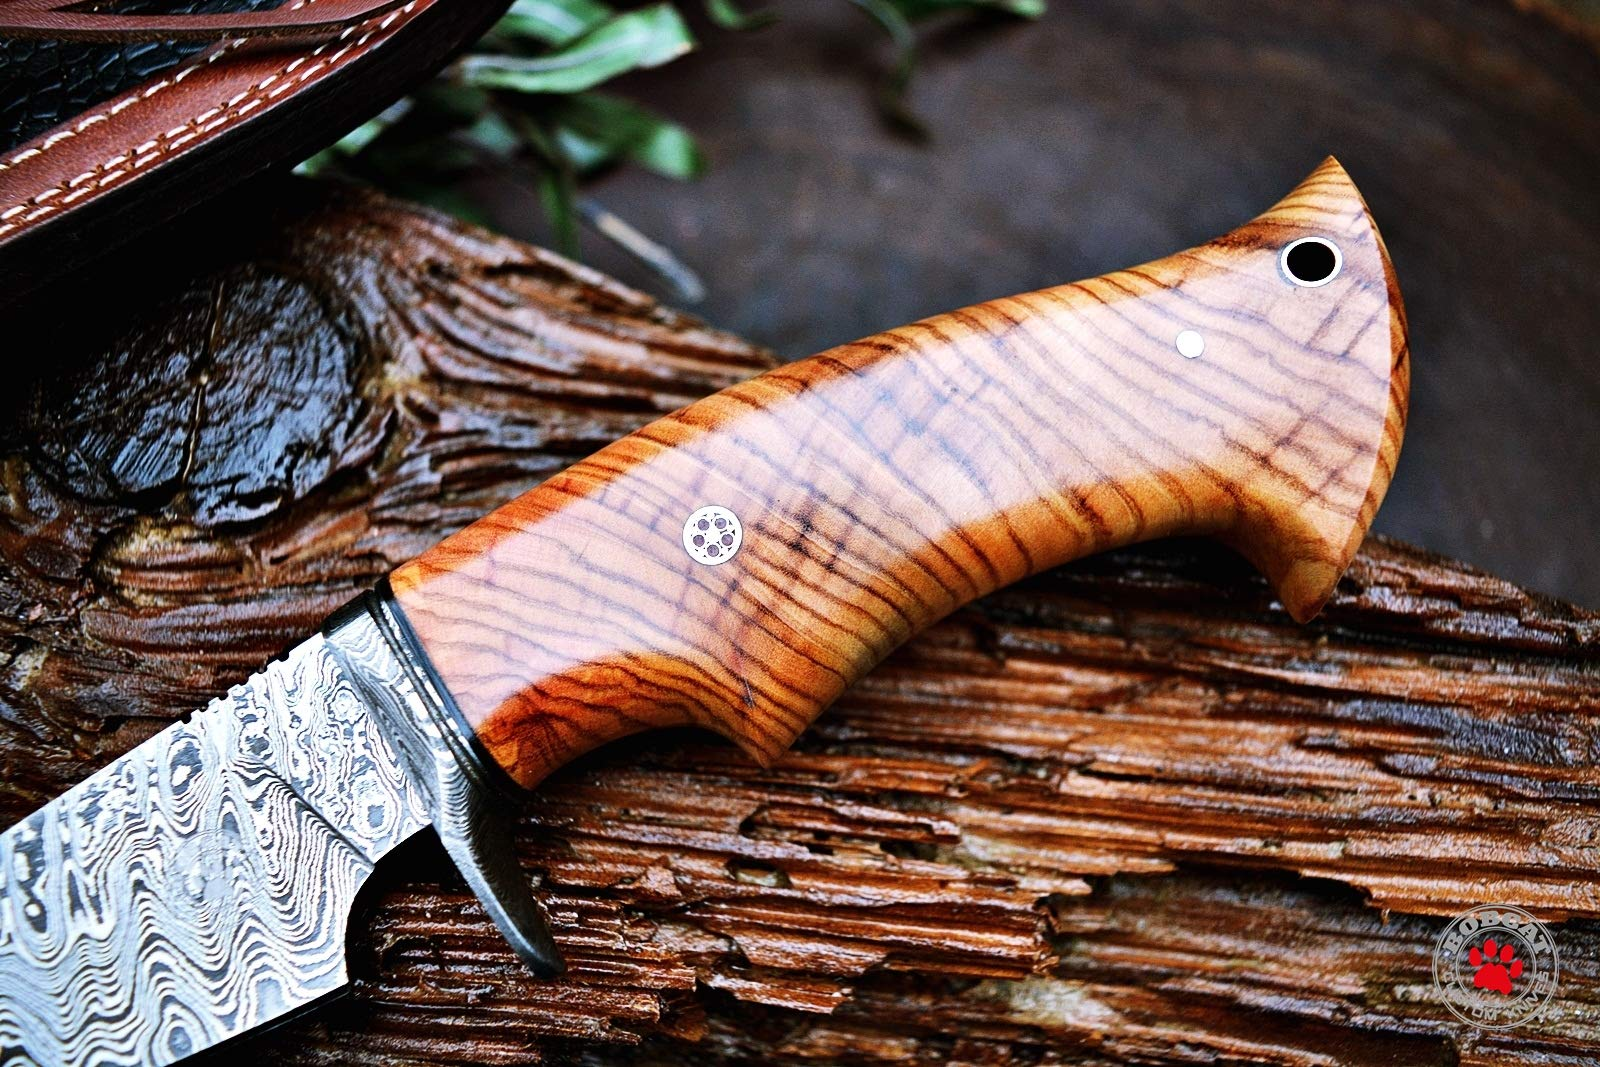 Custom Handmade Hunting Knife Bowie Knife Damascus Steel Survival Knife EDC 10'' Overall Olive Wood with Sheath by Bobcat Knives (Image #2)